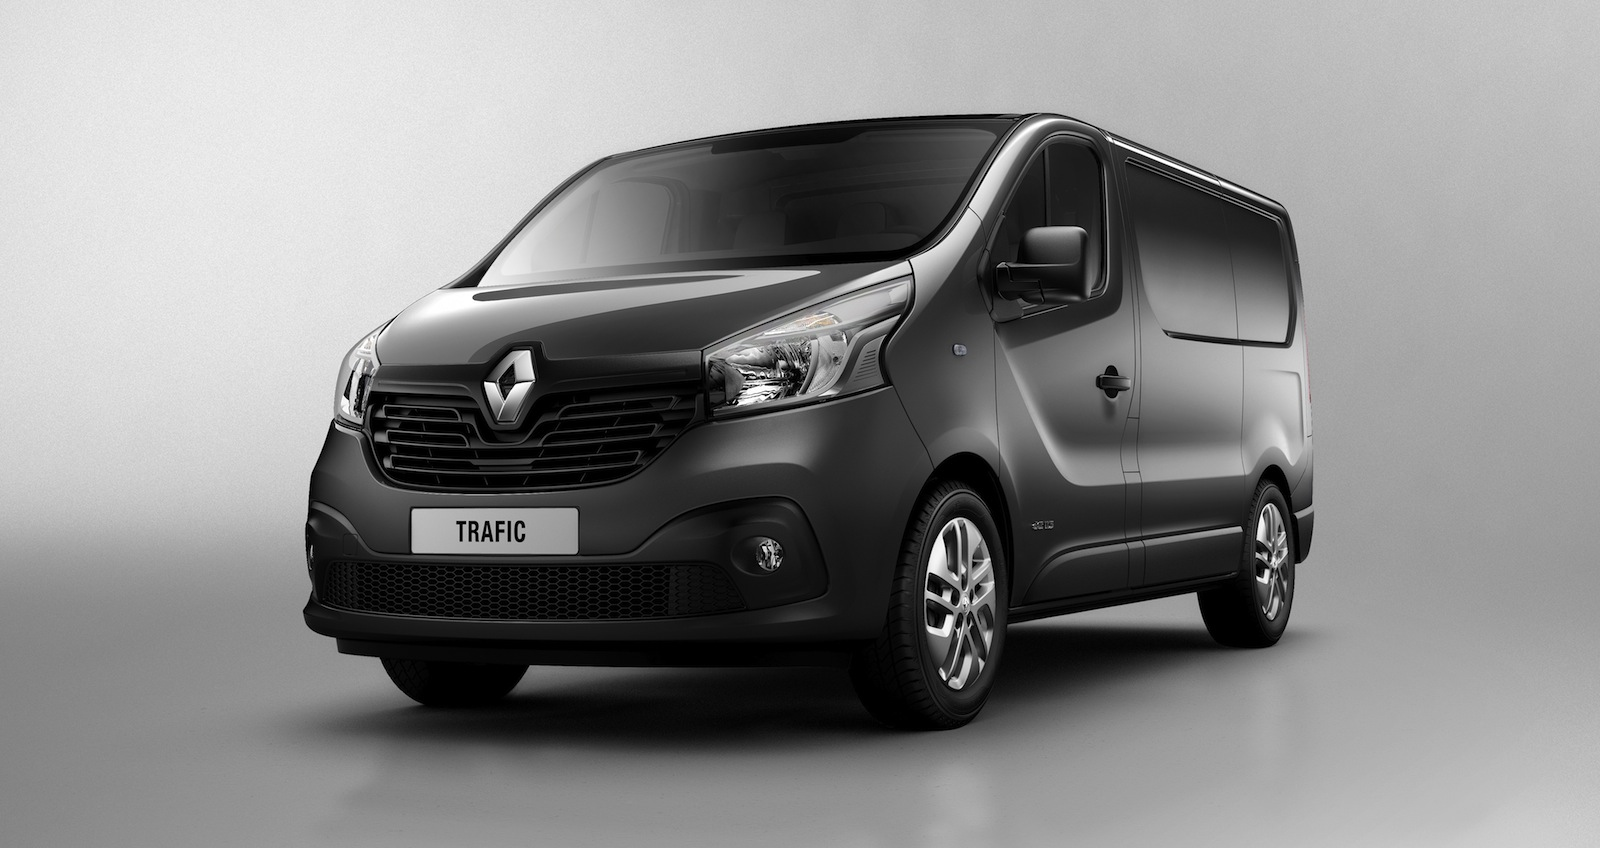 renault trafic van revealed photos 1 of 5. Black Bedroom Furniture Sets. Home Design Ideas